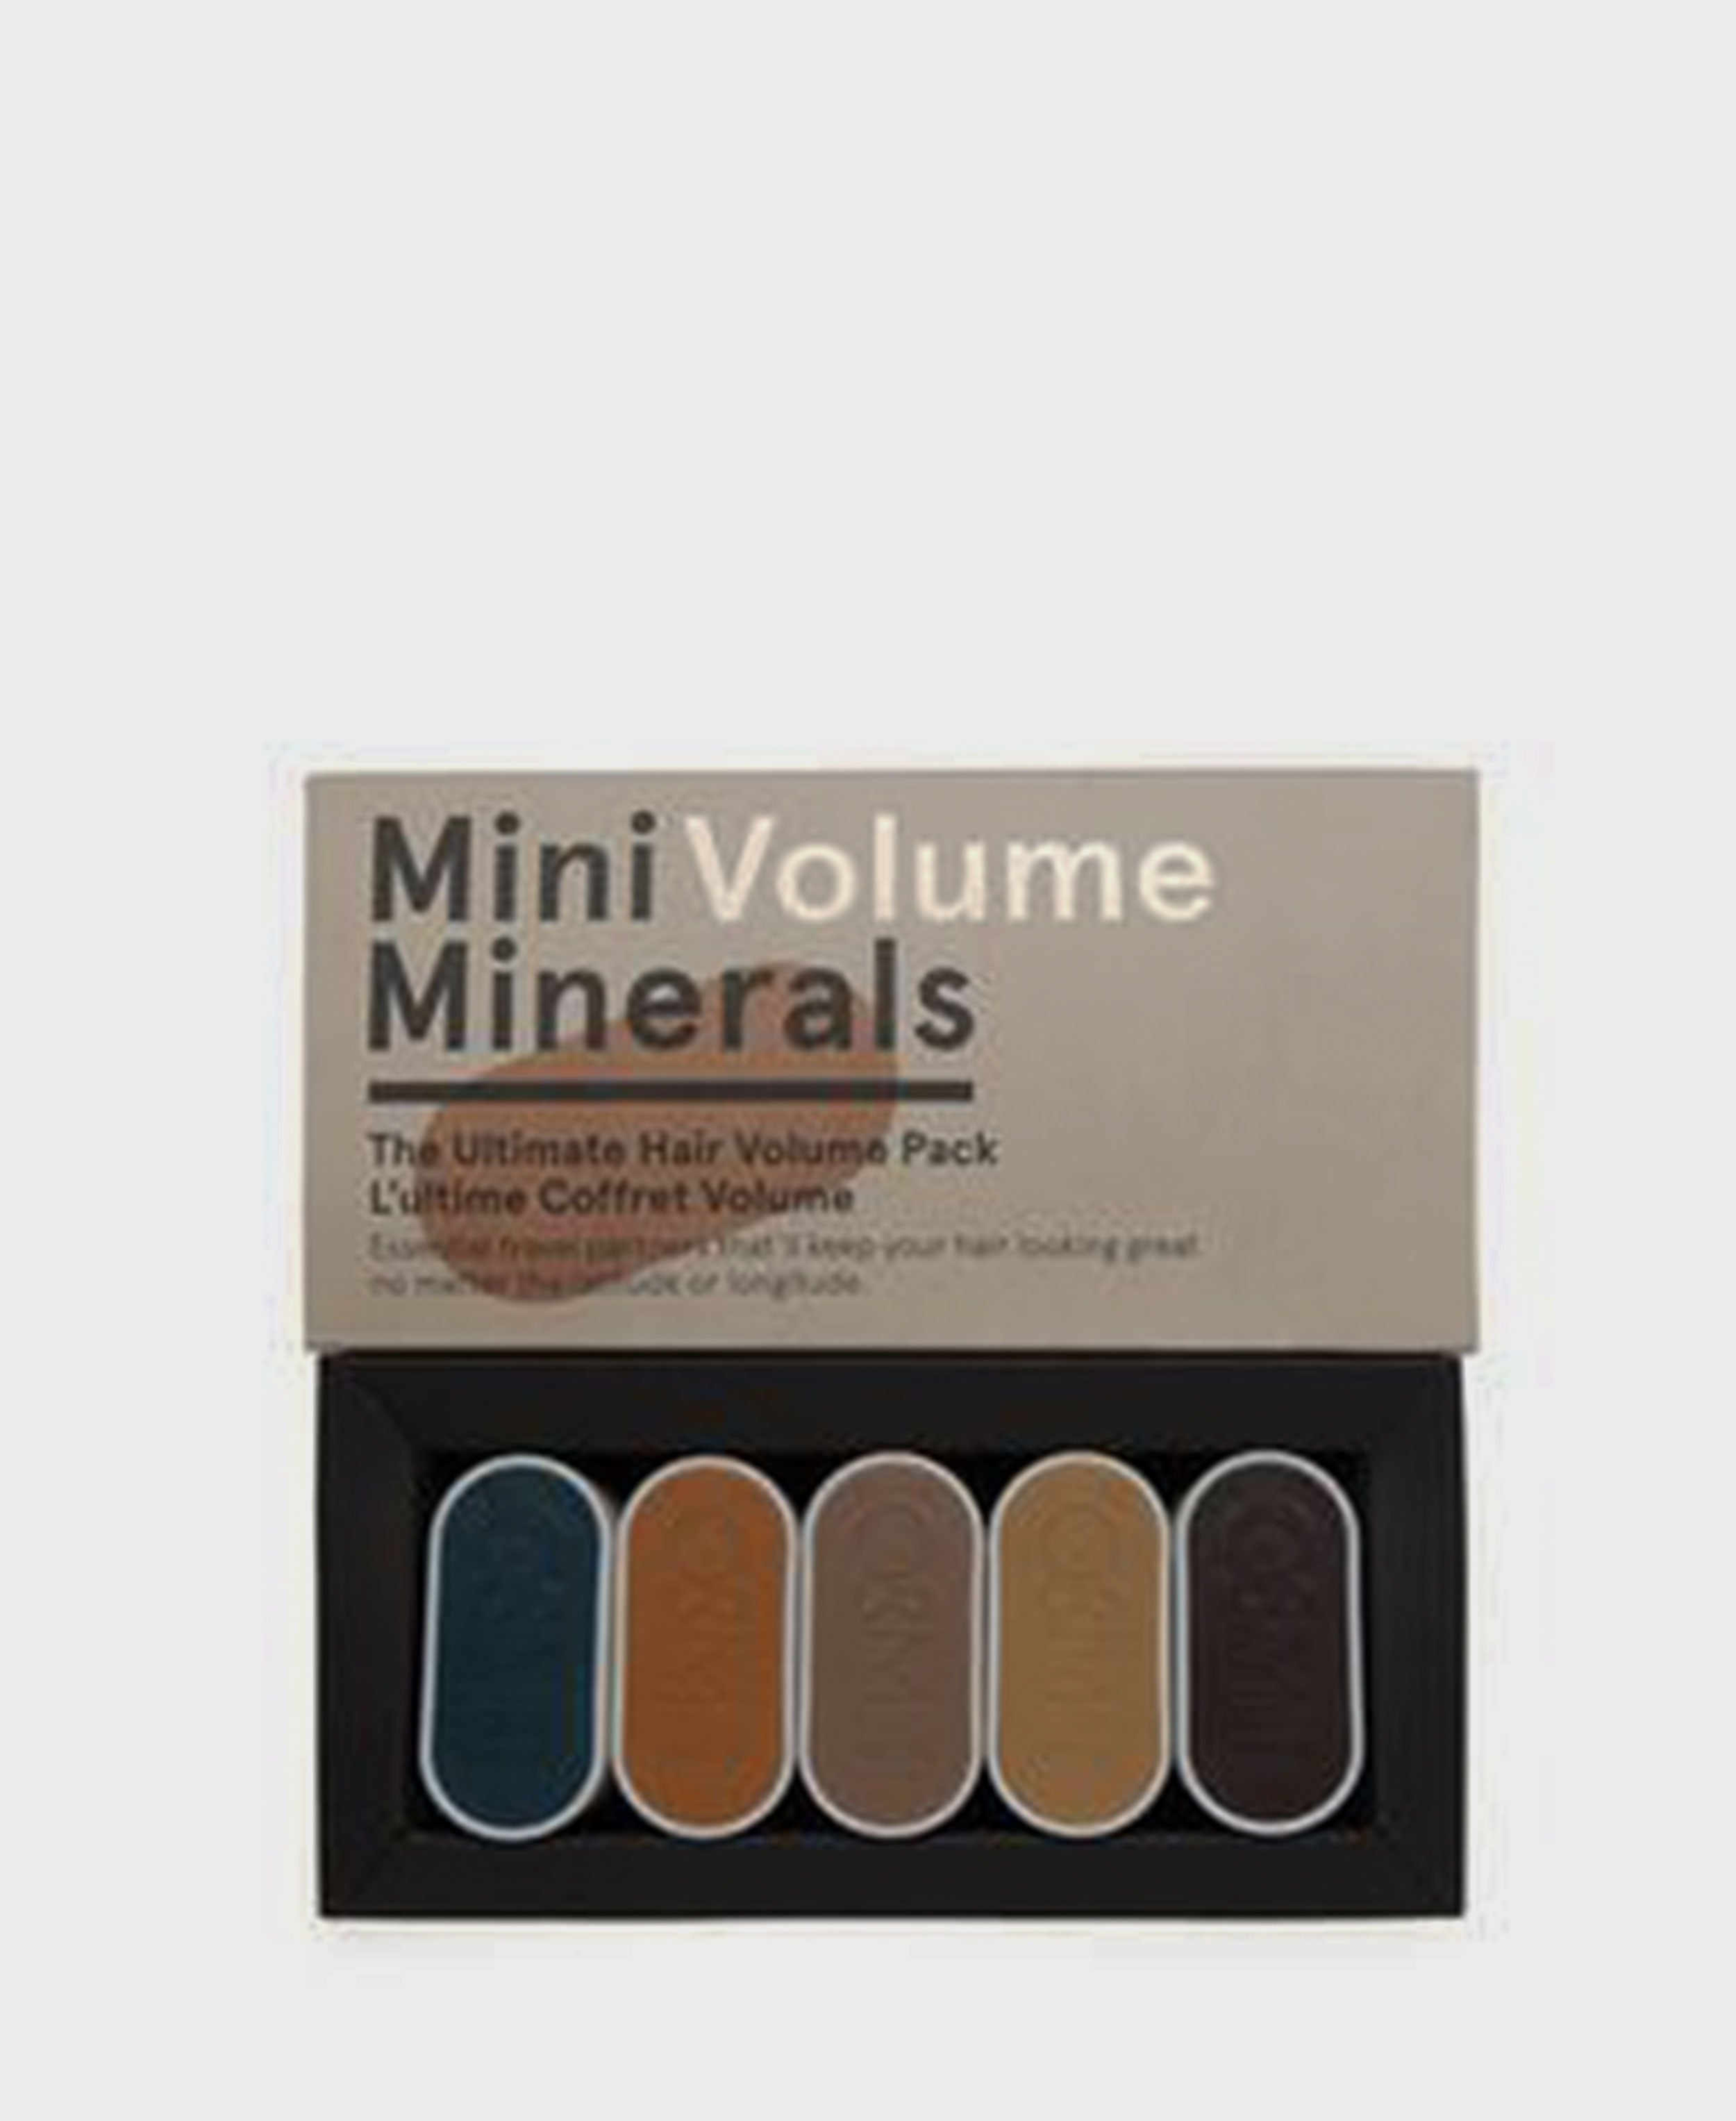 MINI VOLUME MINERALS KIT